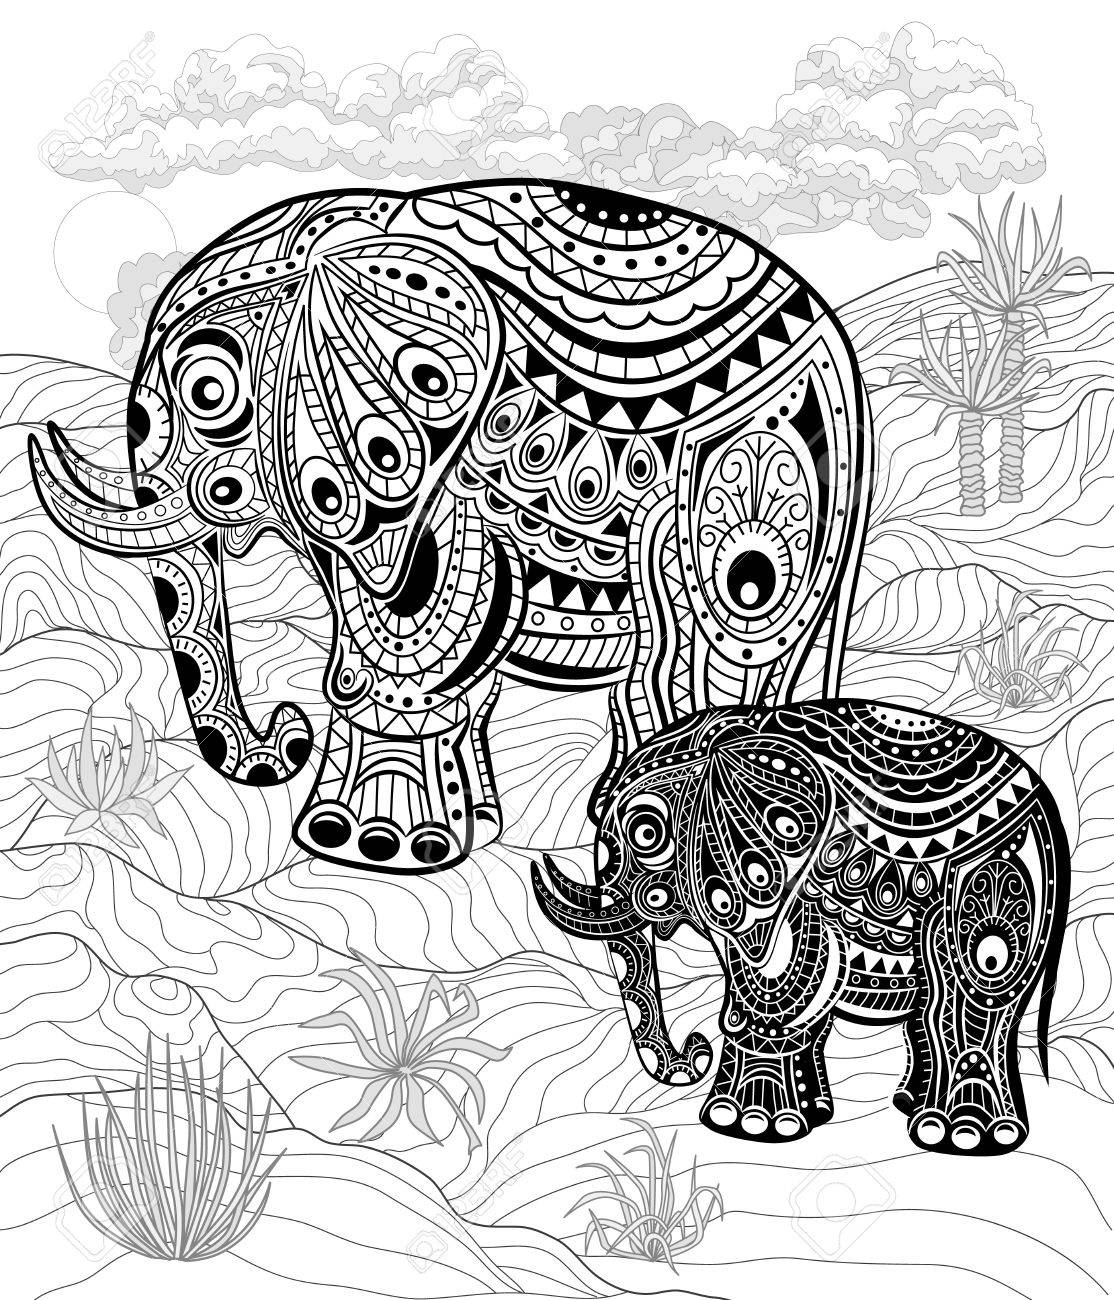 Hand Drawn Ink Elephants For Relax And Meditation. Black And ...